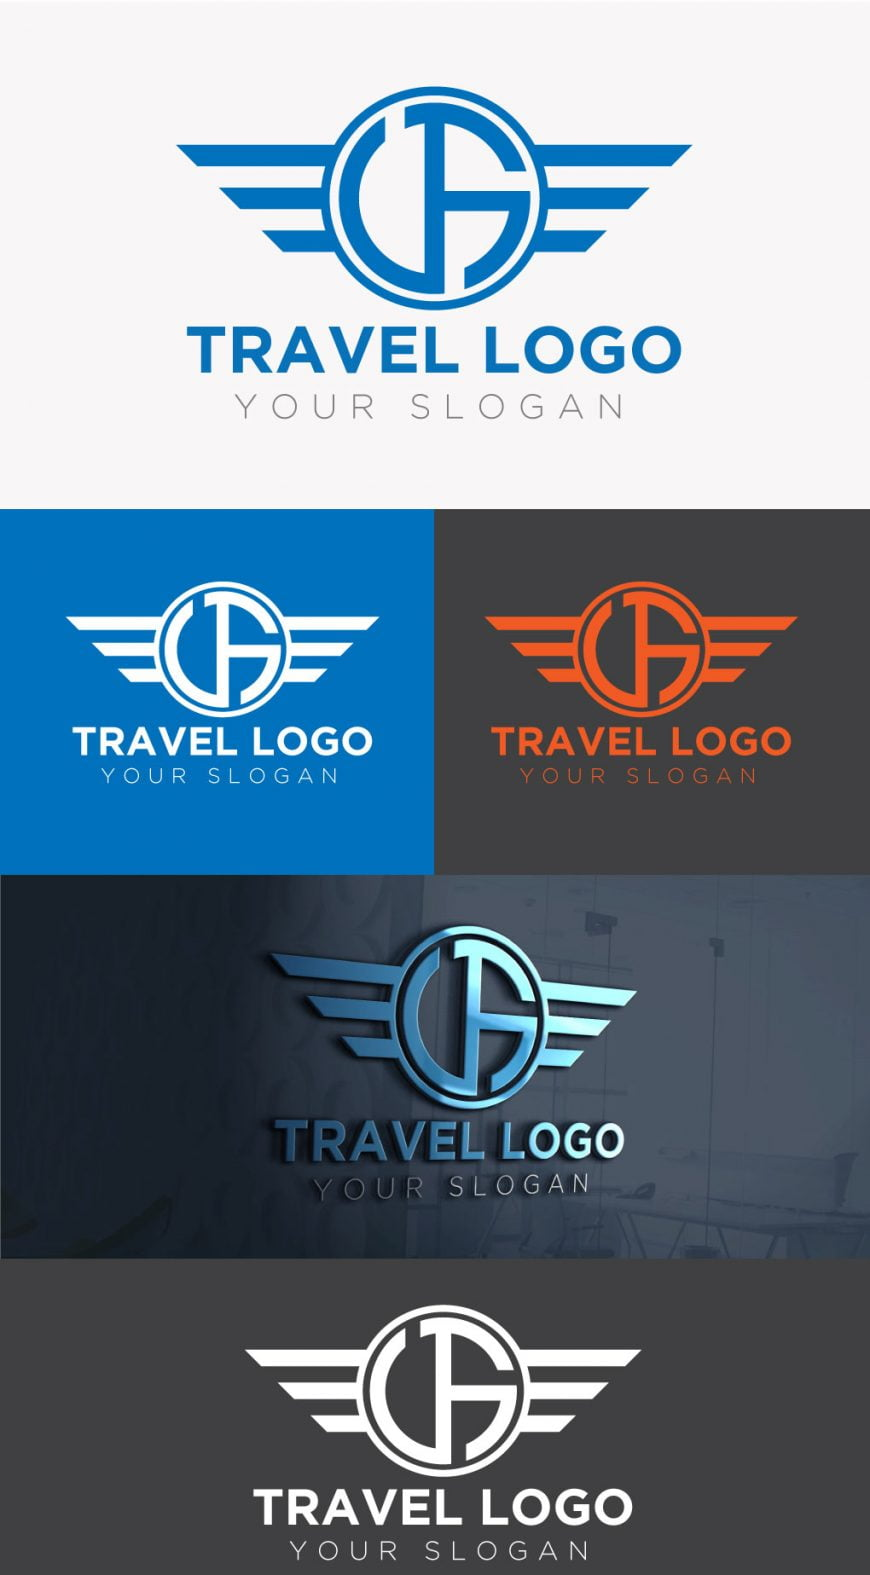 travel-logo-free-template-1